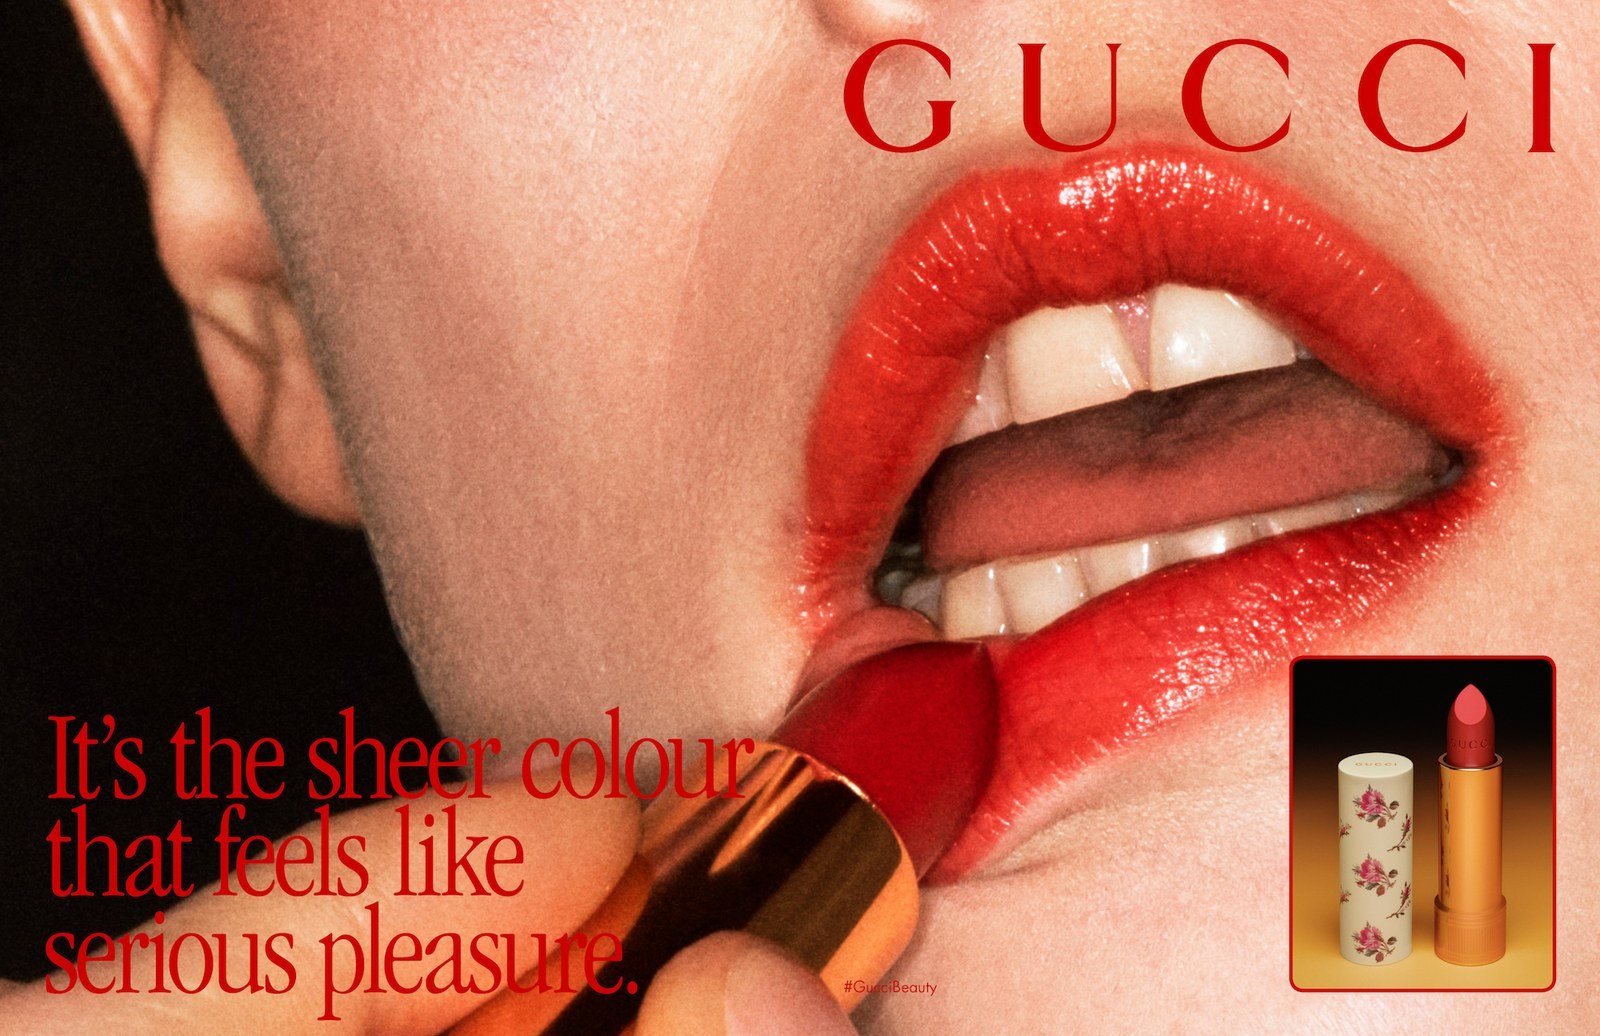 GU611_LIPS%2520CHAPTER%25201_LAYOUT%2520WITH%2520TAGGING_DPS_300dpi_02.jpg